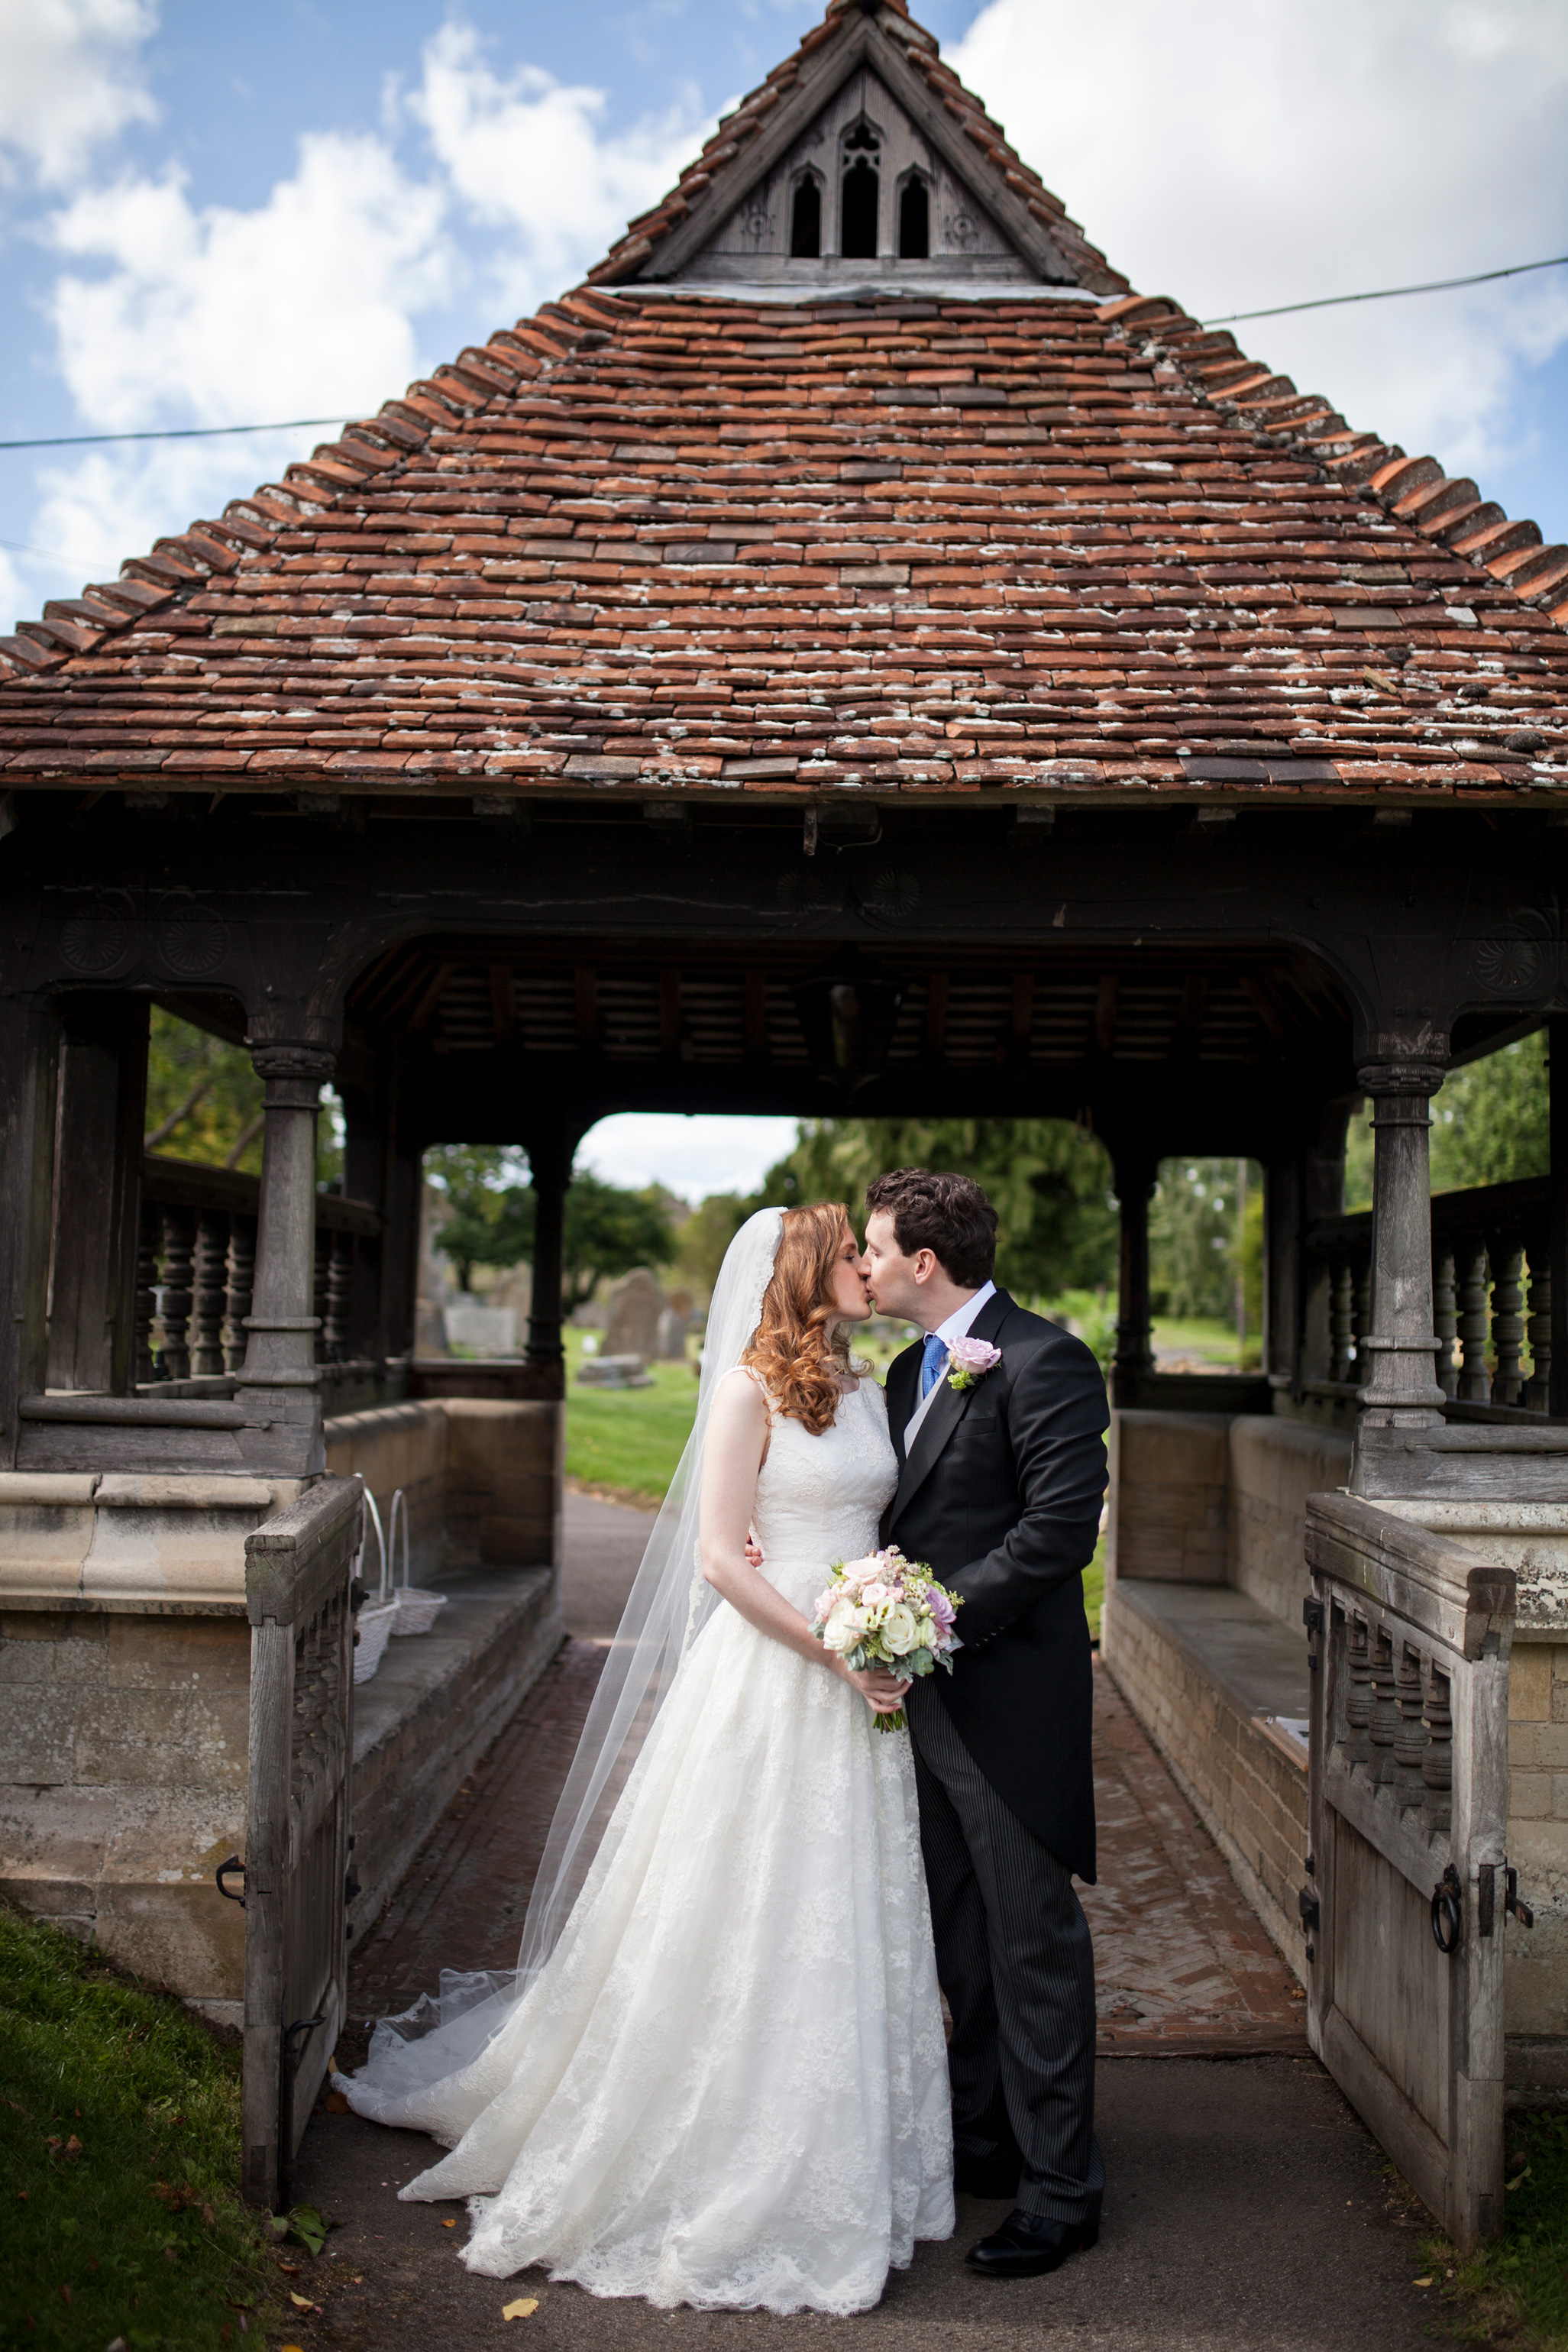 Buckinghamshire Wedding, Couple, Church Wedding,